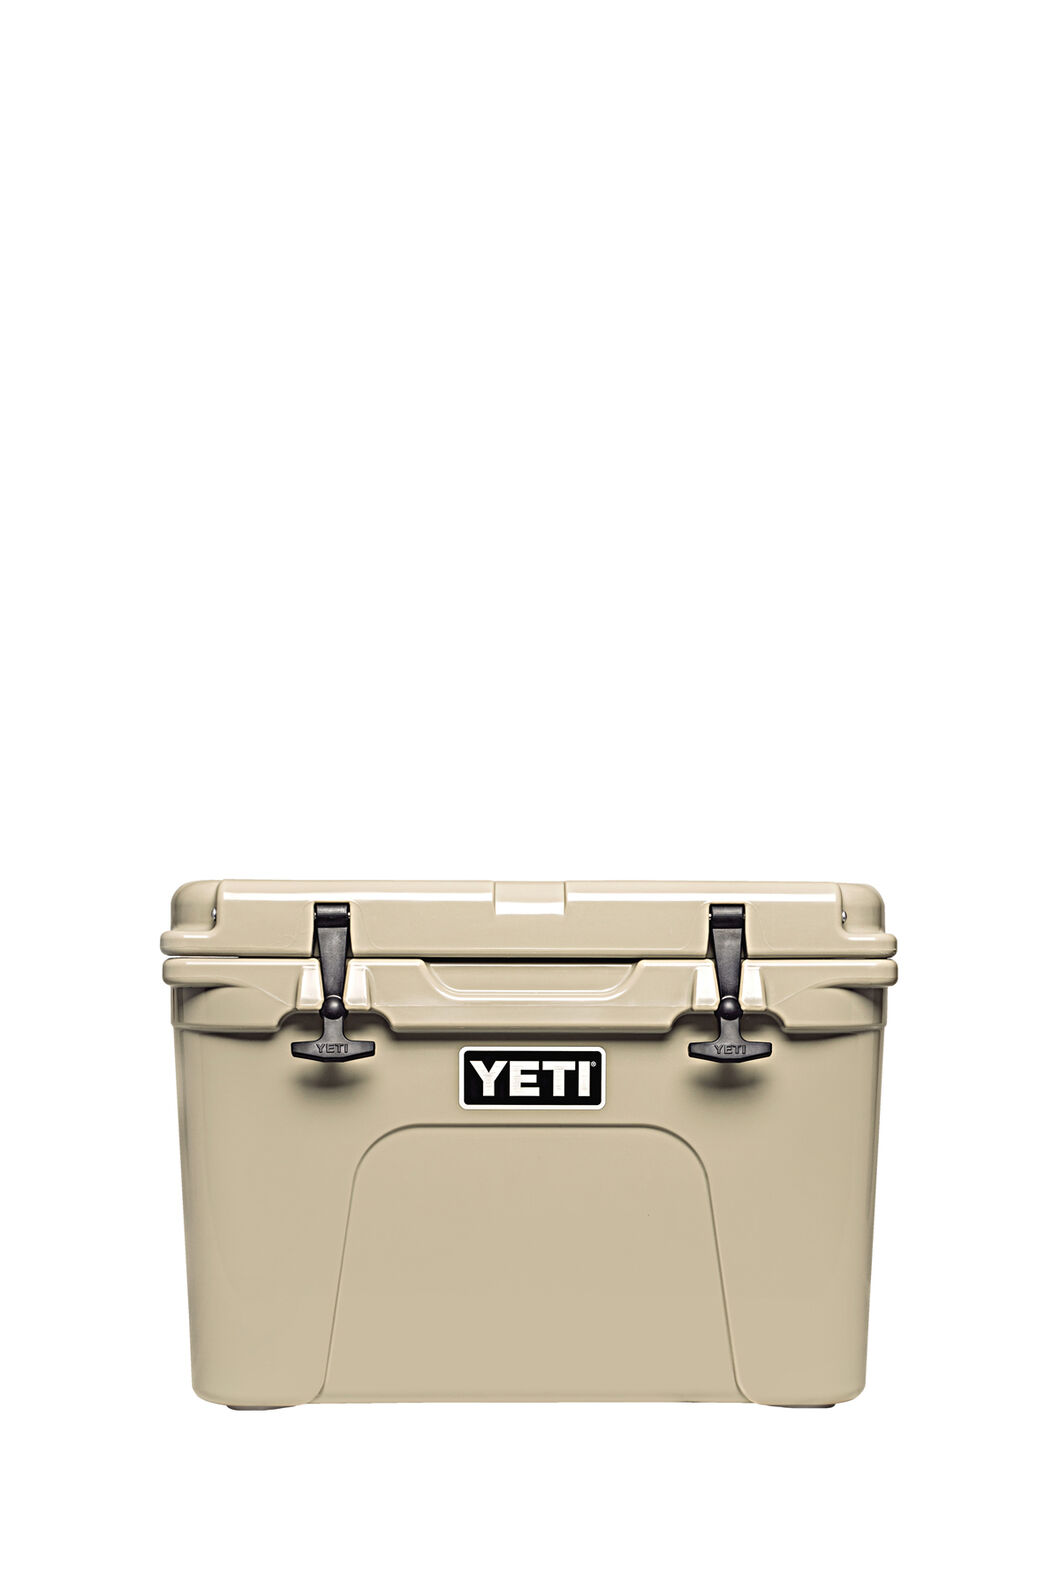 YETI® Tundra 35 Hard Cooler, Tan, hi-res